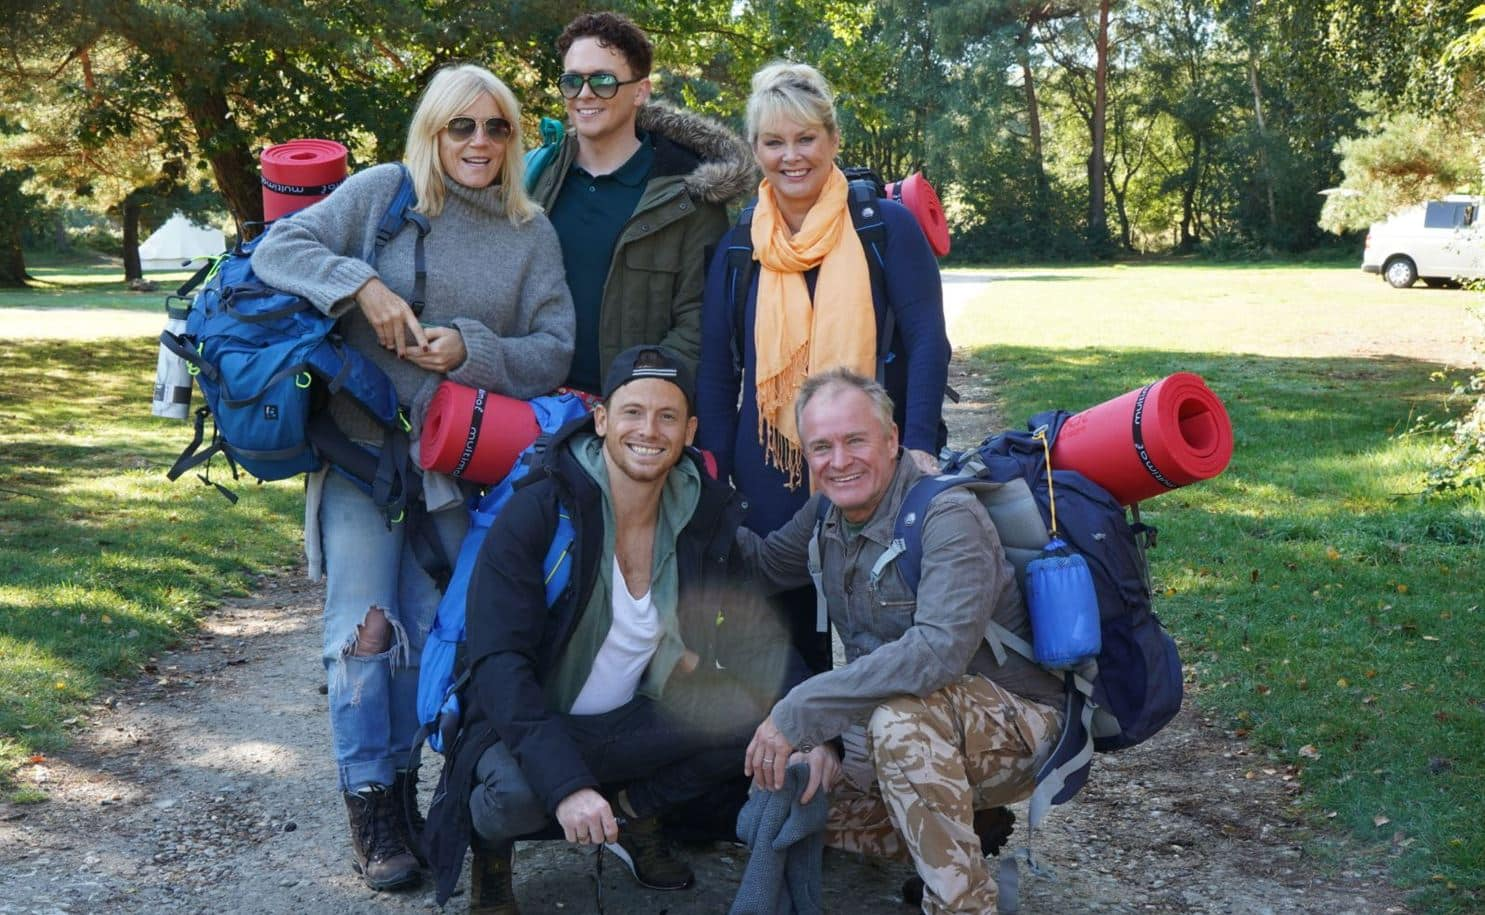 Singer Cheryl Baker, actor and king of the jungle Joe Swash, former EastEnder Michelle Collins and comedians Bobby Davro and Stephen Bailey wave goodbye to their comfy beds and flatscreen TVs for three weeks and embrace the great outdoors and a life under canvas for this new five-part series.